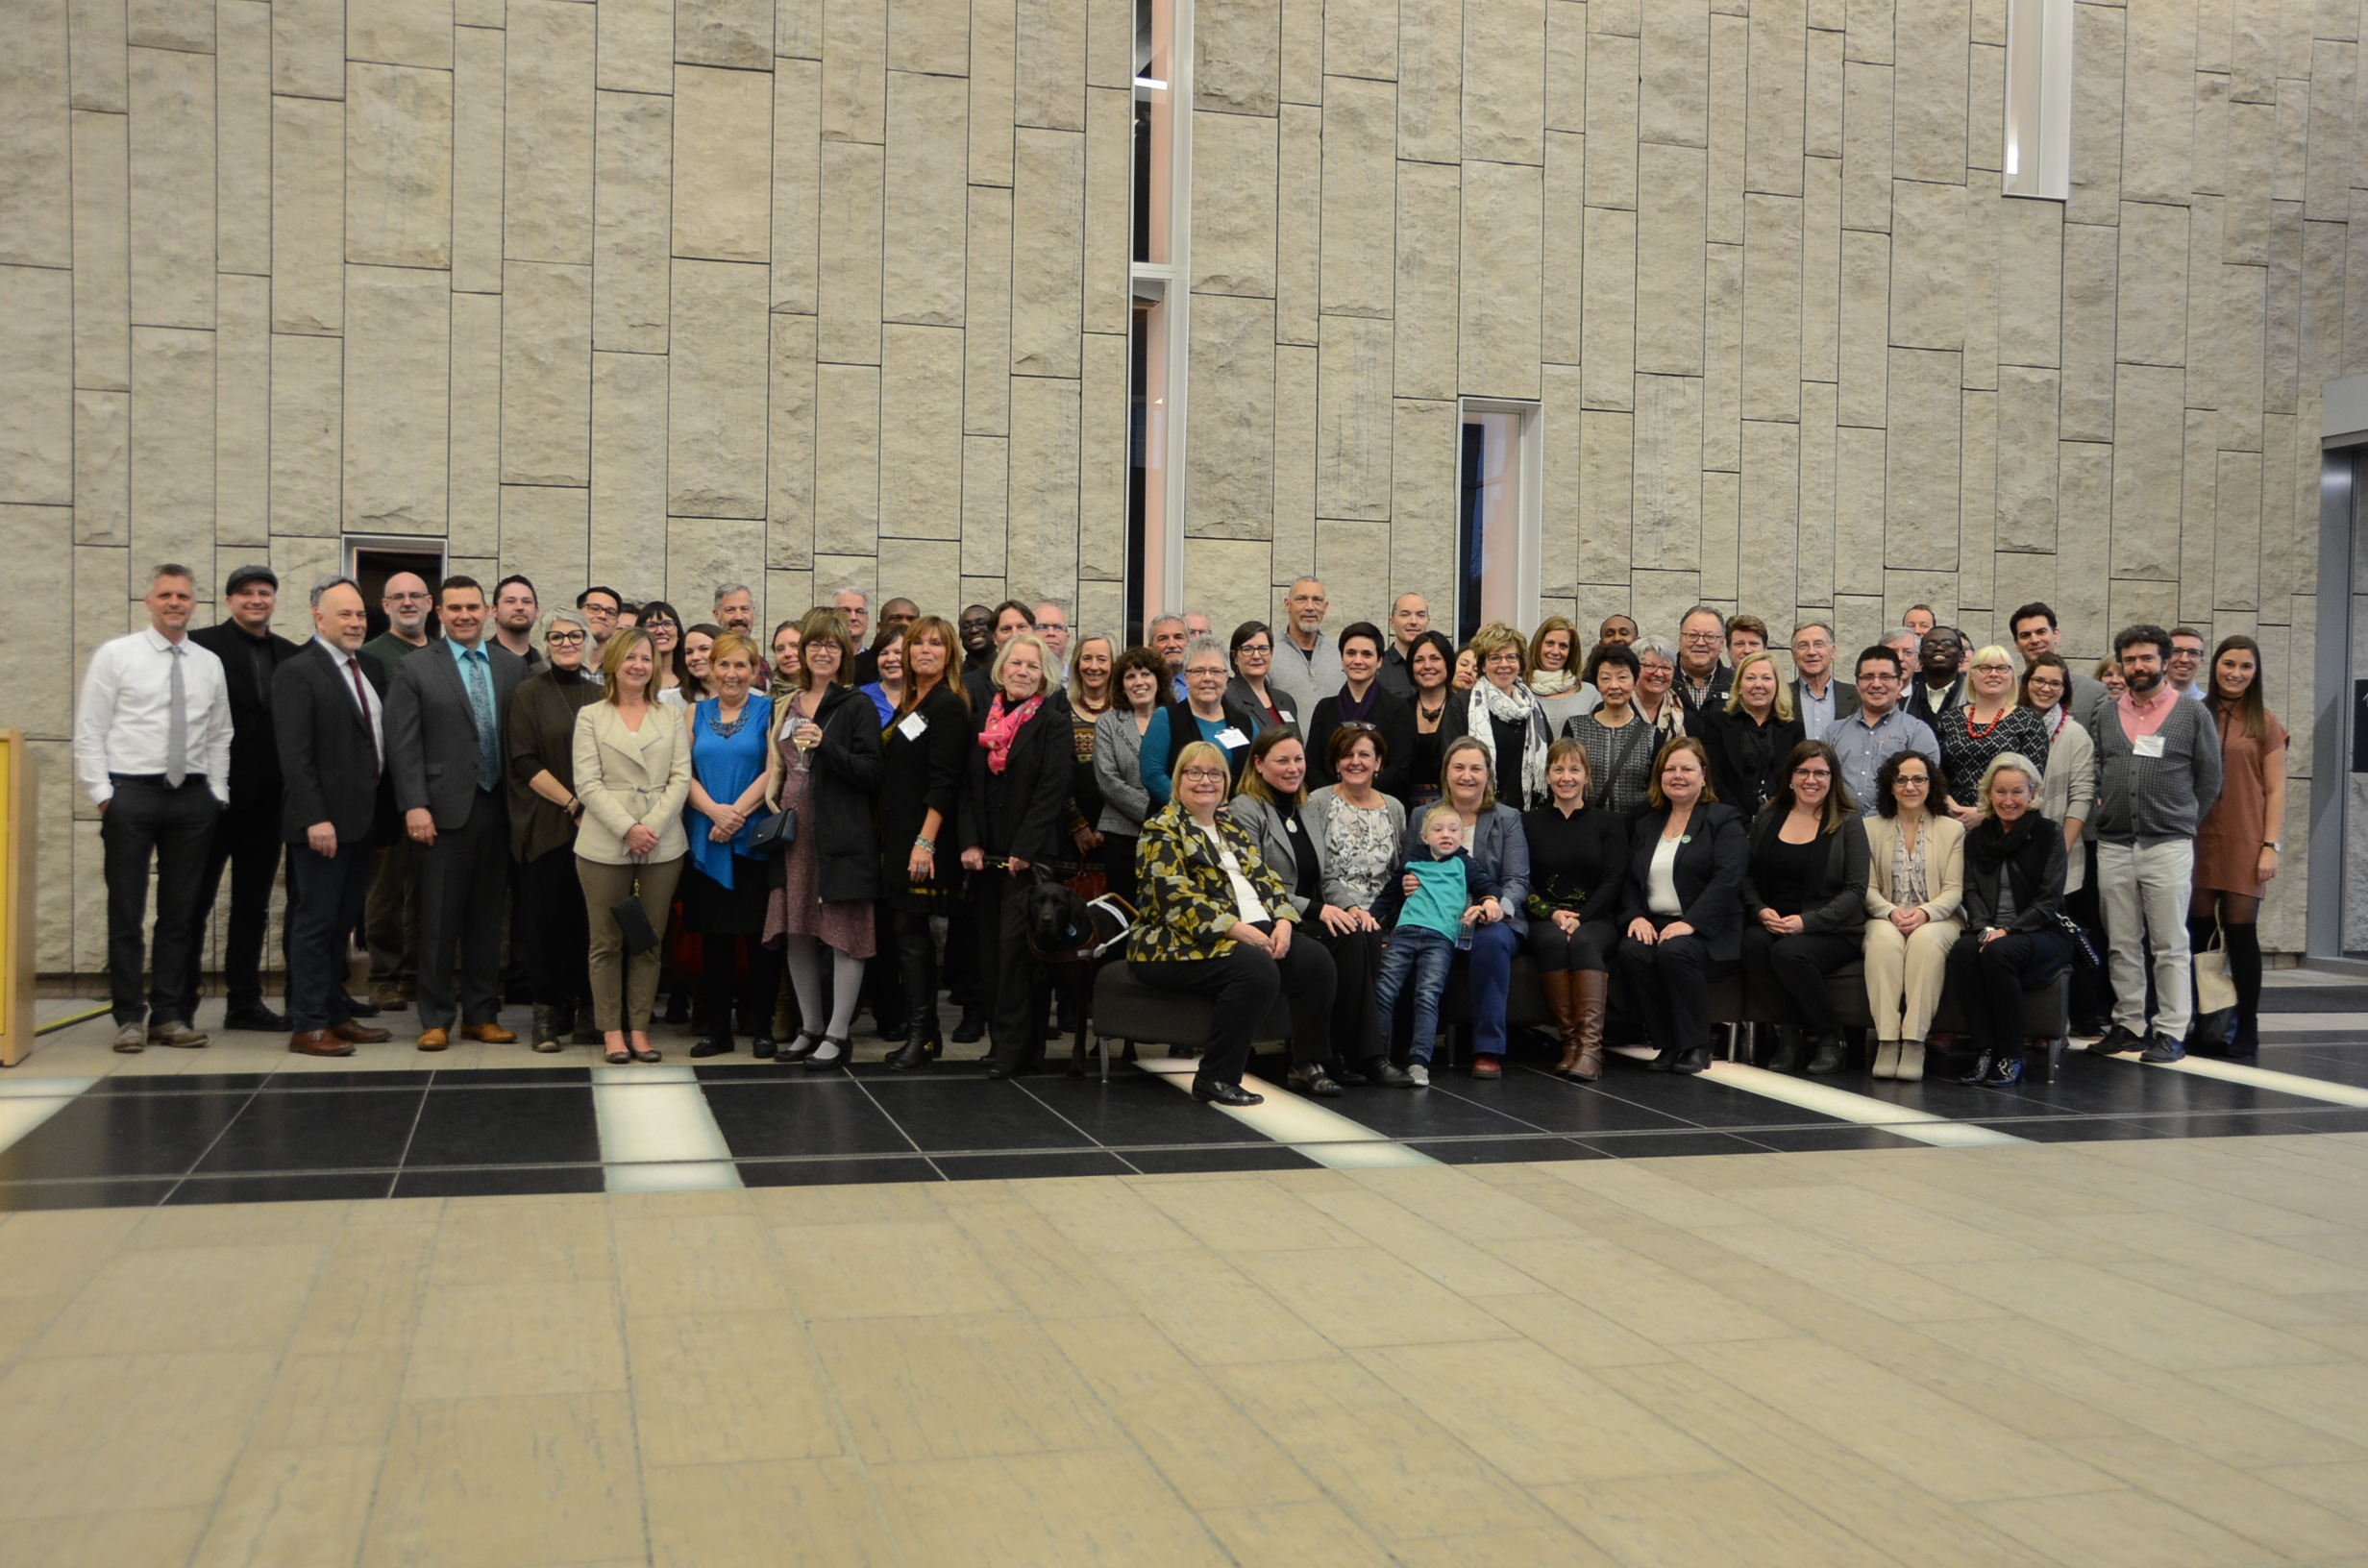 The attending CMNCP members at the reception held at the Waterloo Region Museum.